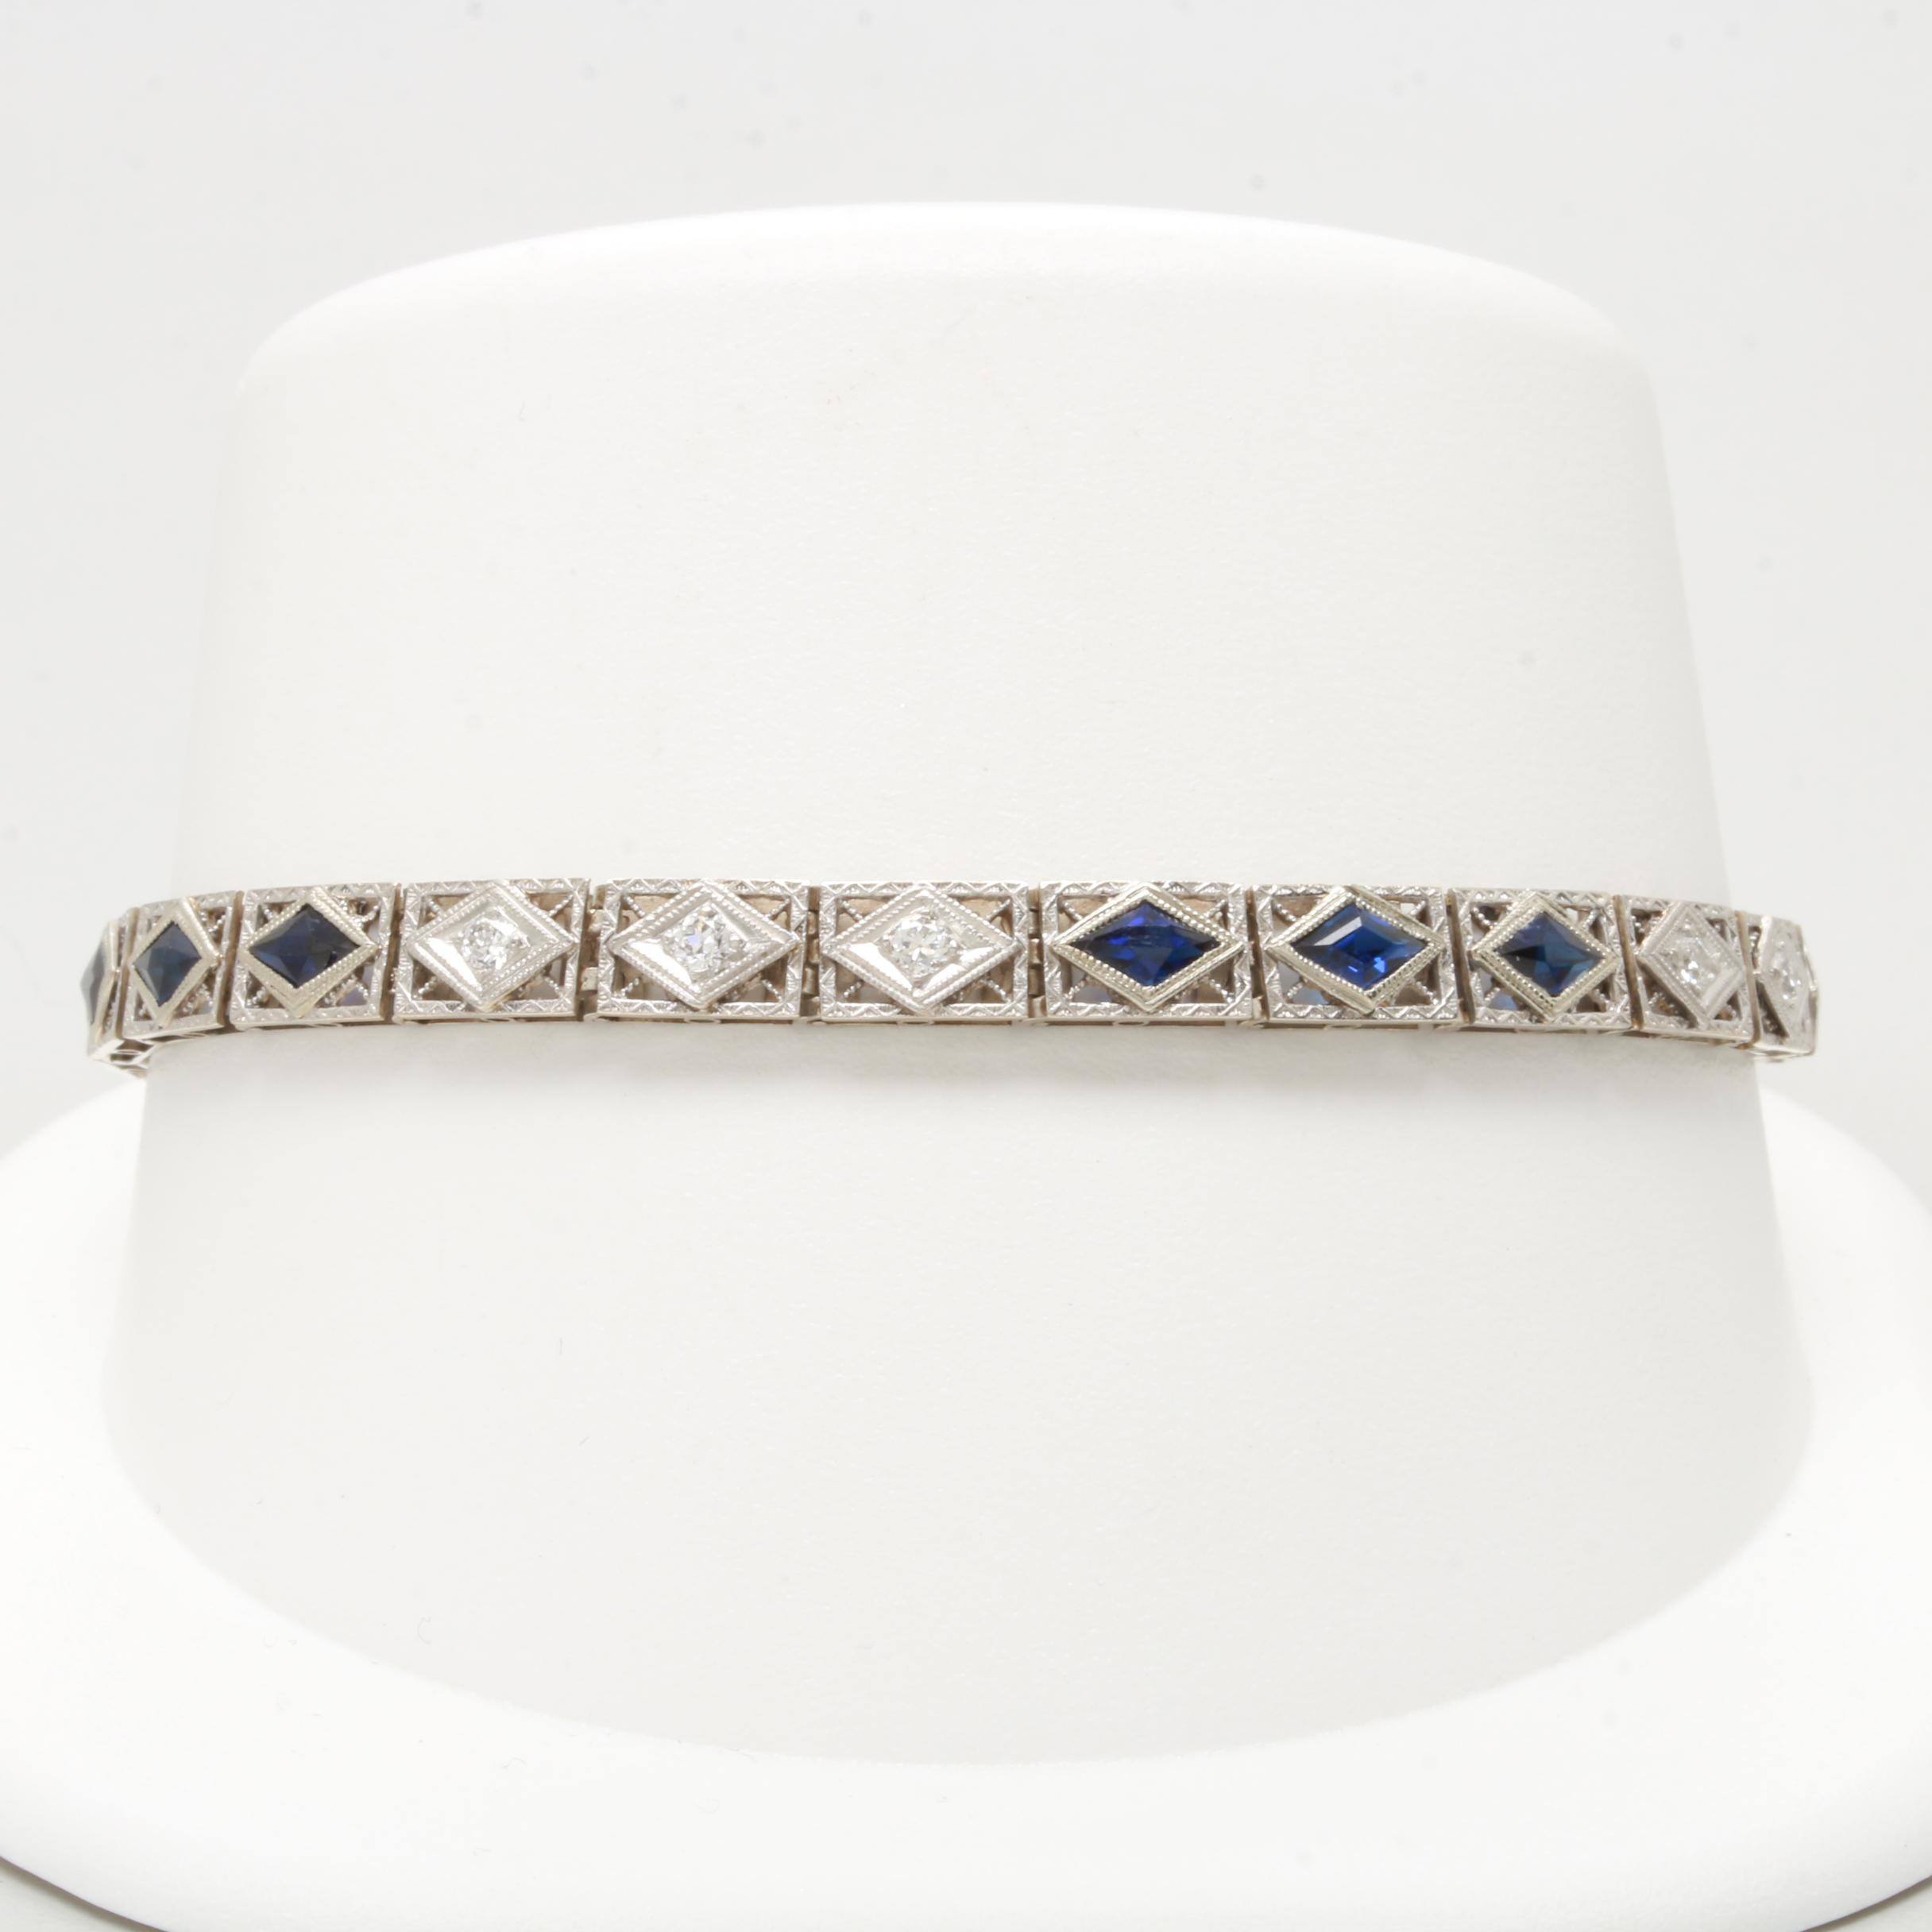 Circa 1930s 14K White Gold Diamond and Synthetic Sapphire Bracelet